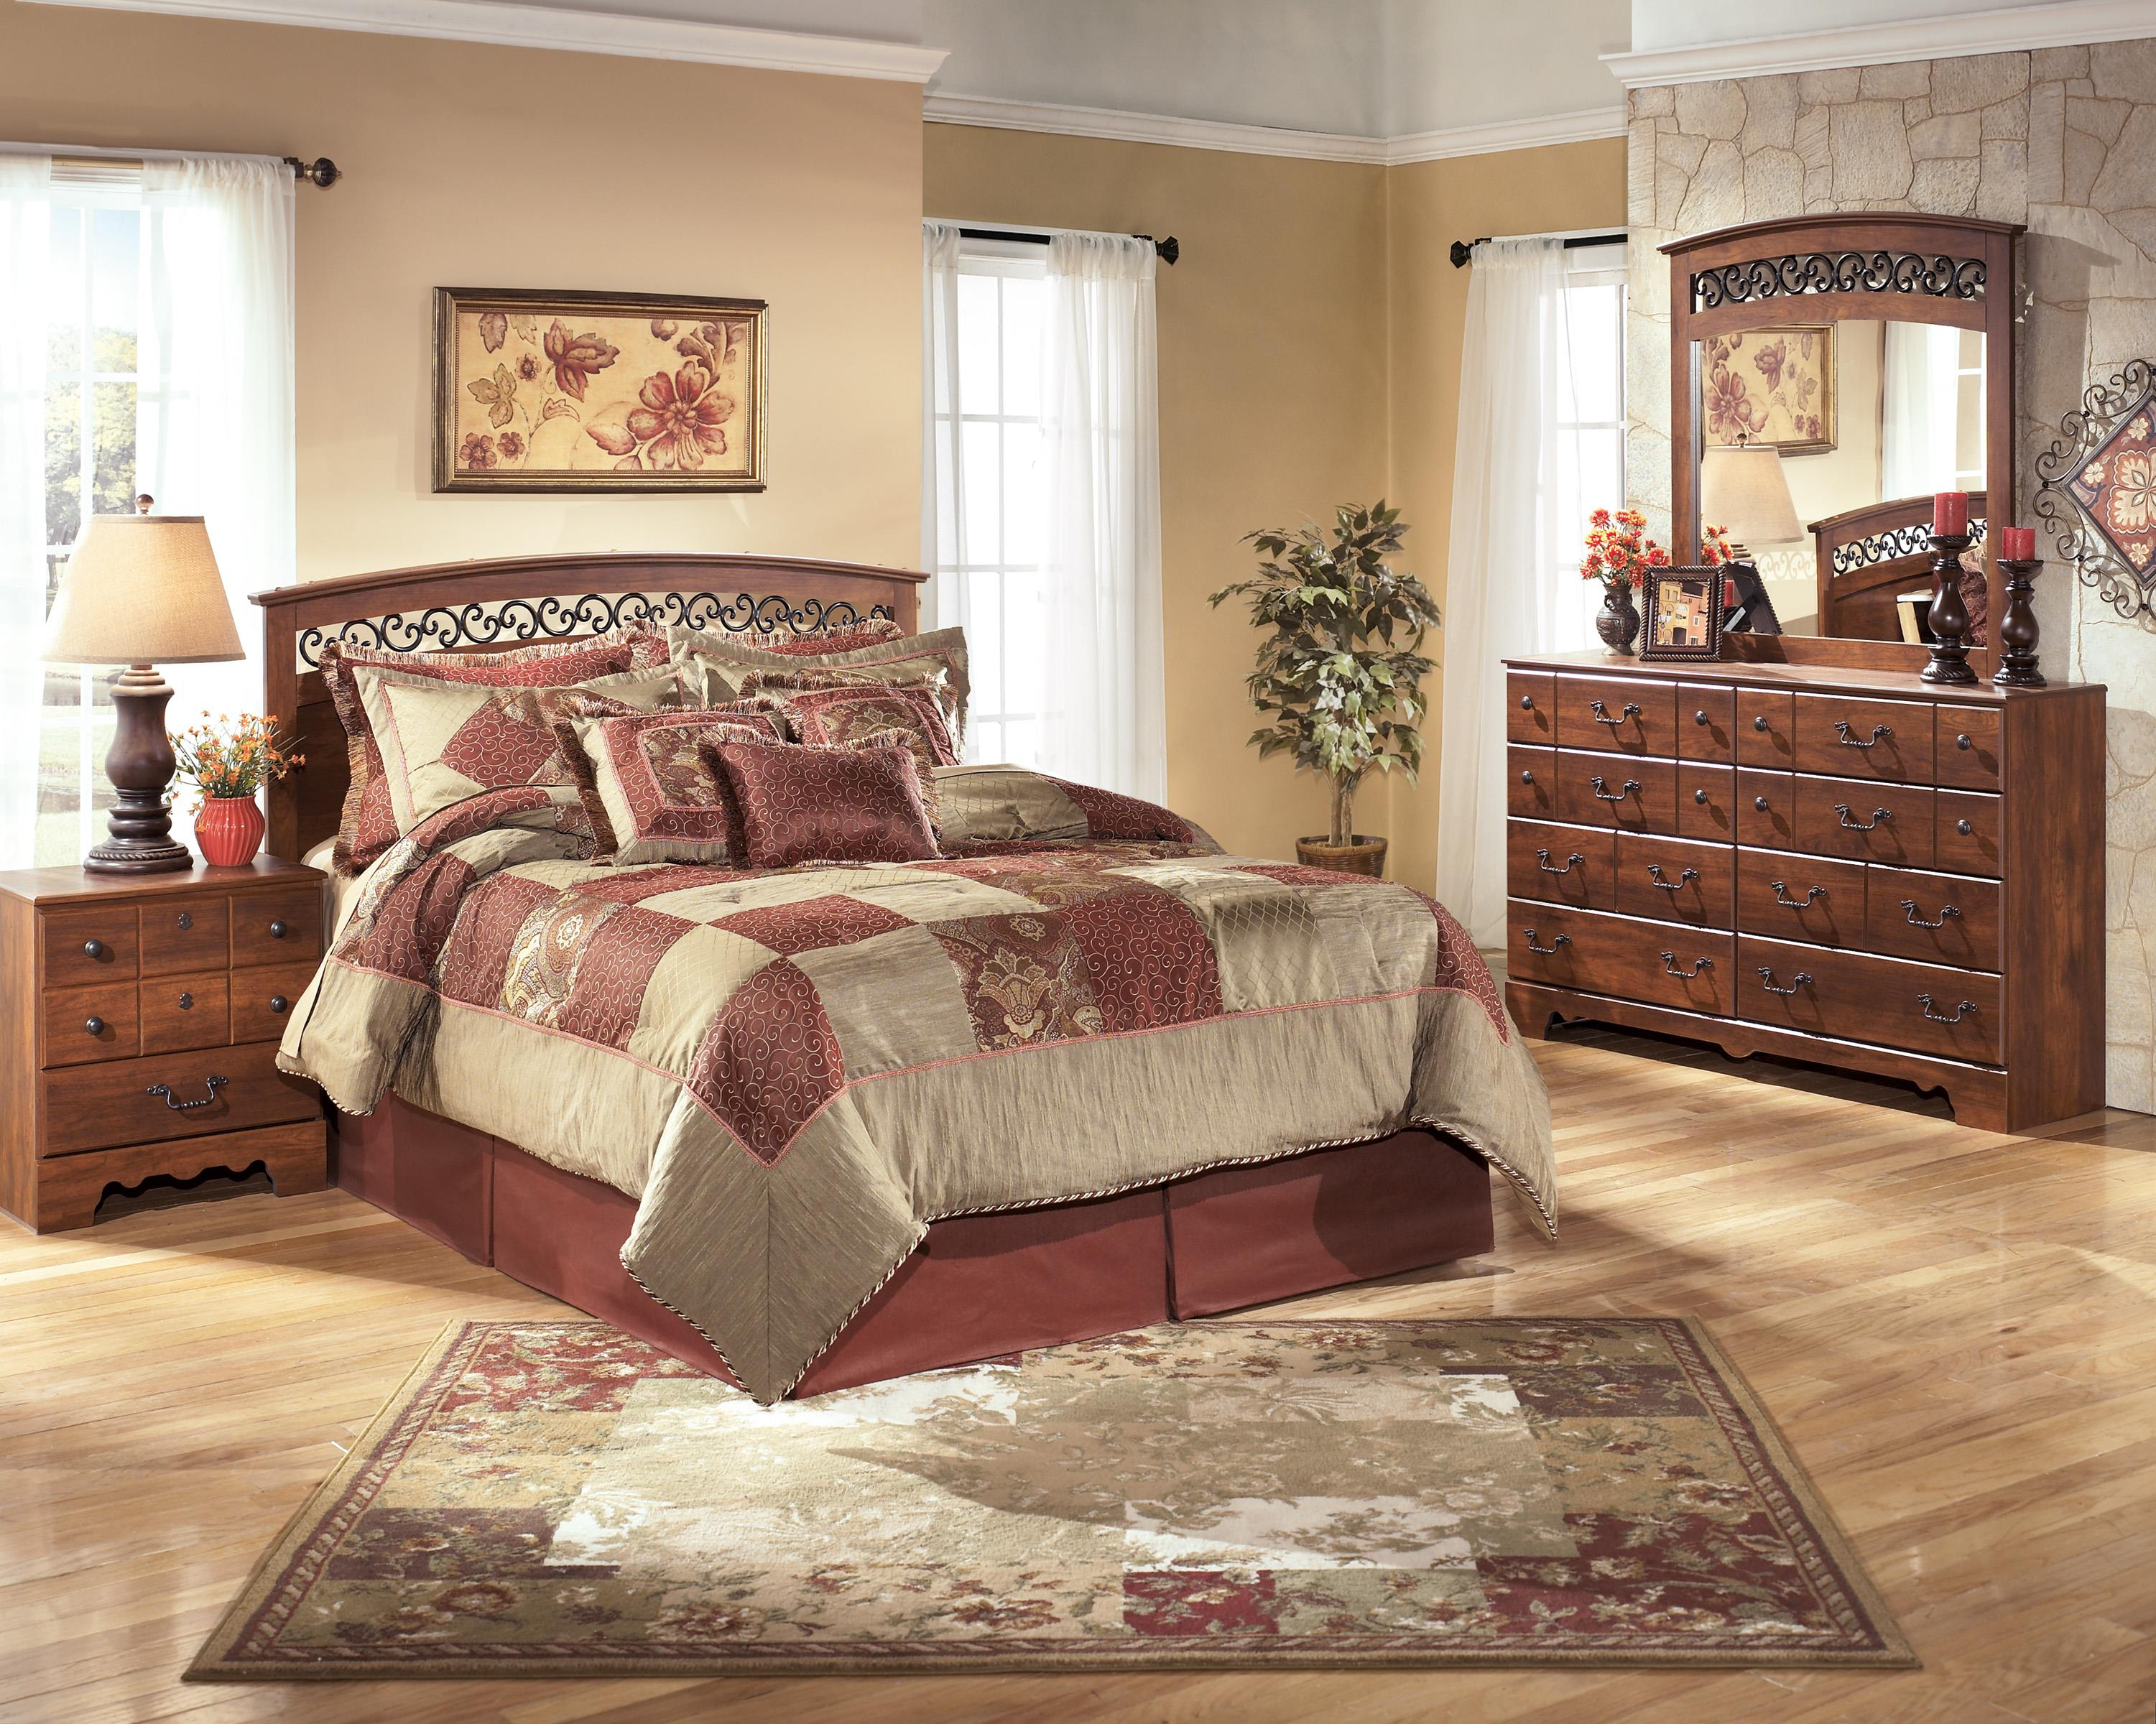 Signature design by ashley timberline queen full bedroom - Ashley furniture full bedroom sets ...